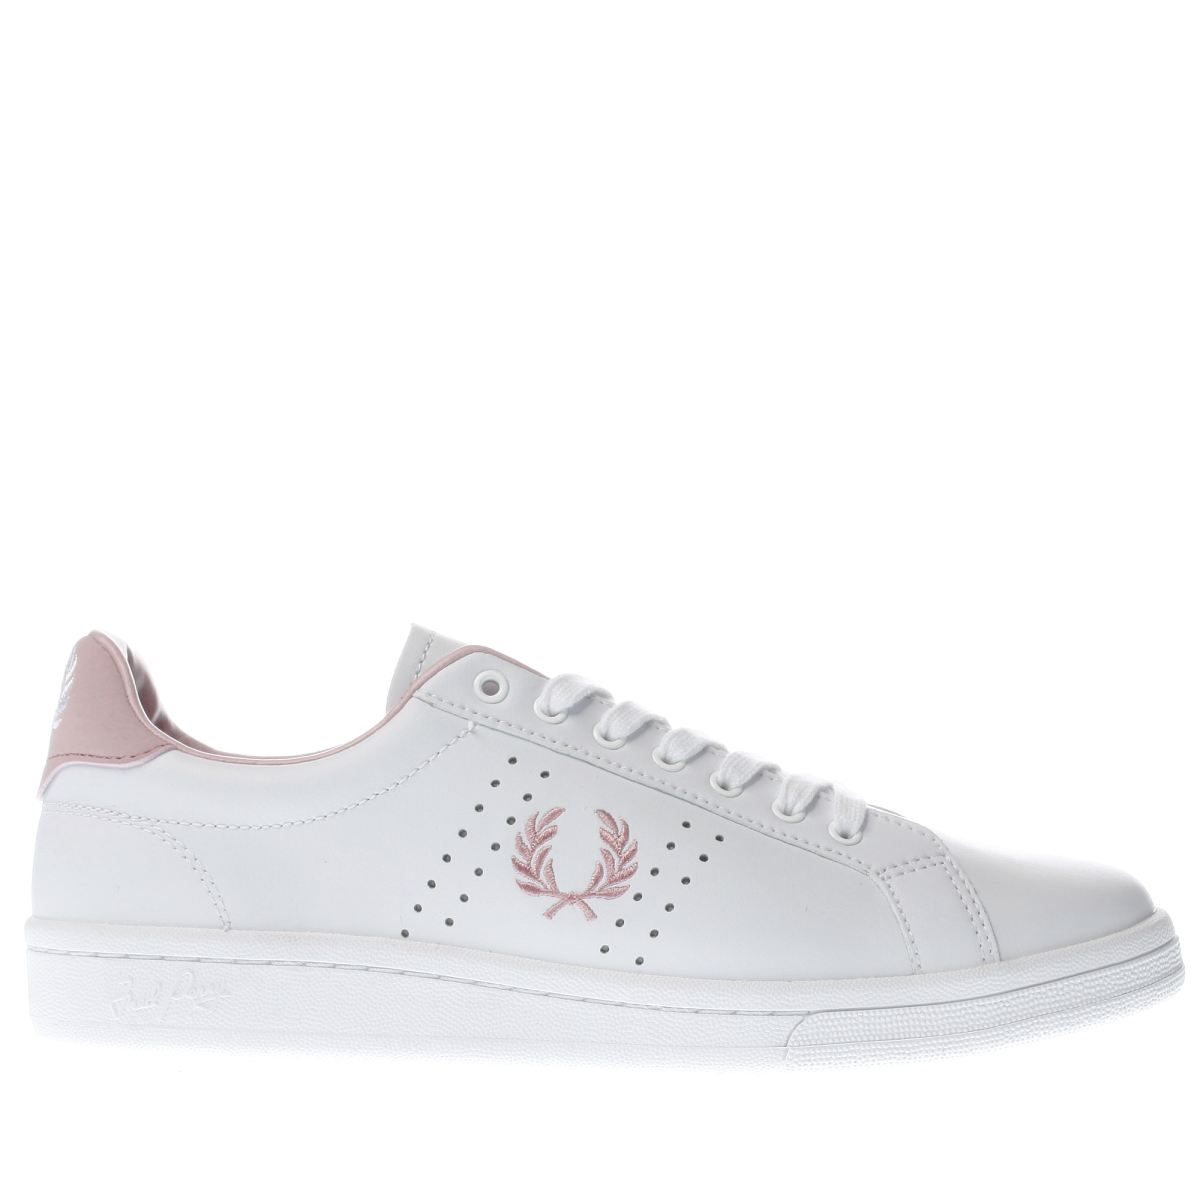 fred perry white & pink b721 leather trainers